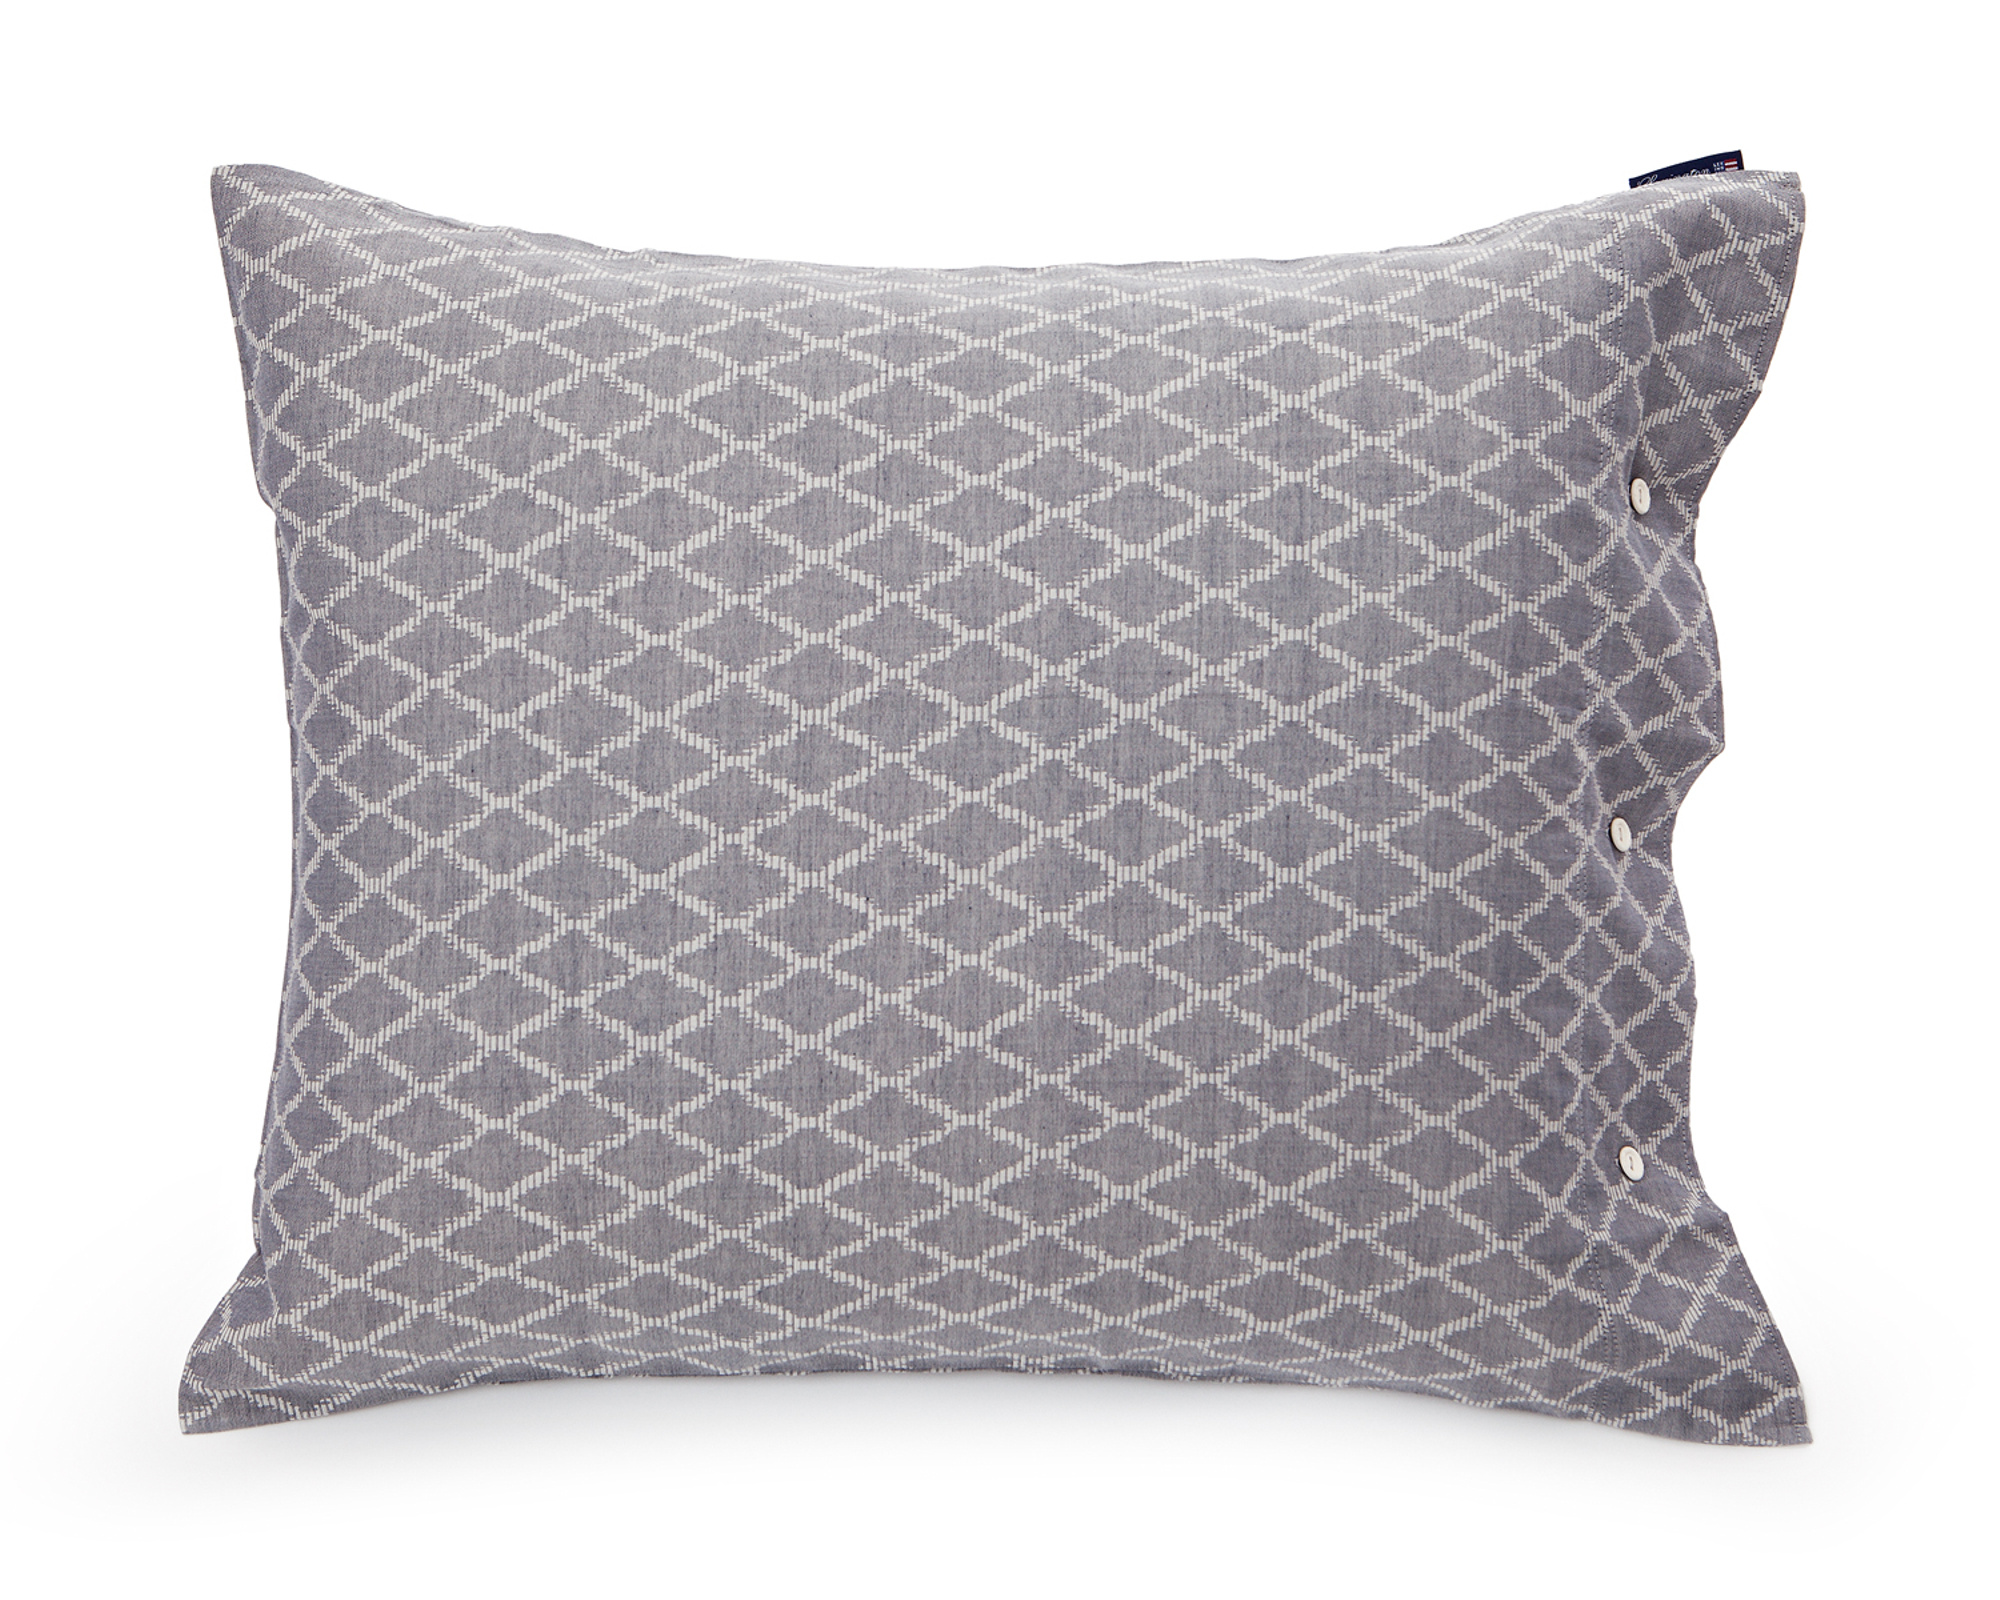 Blue Jacquard Pillowcase